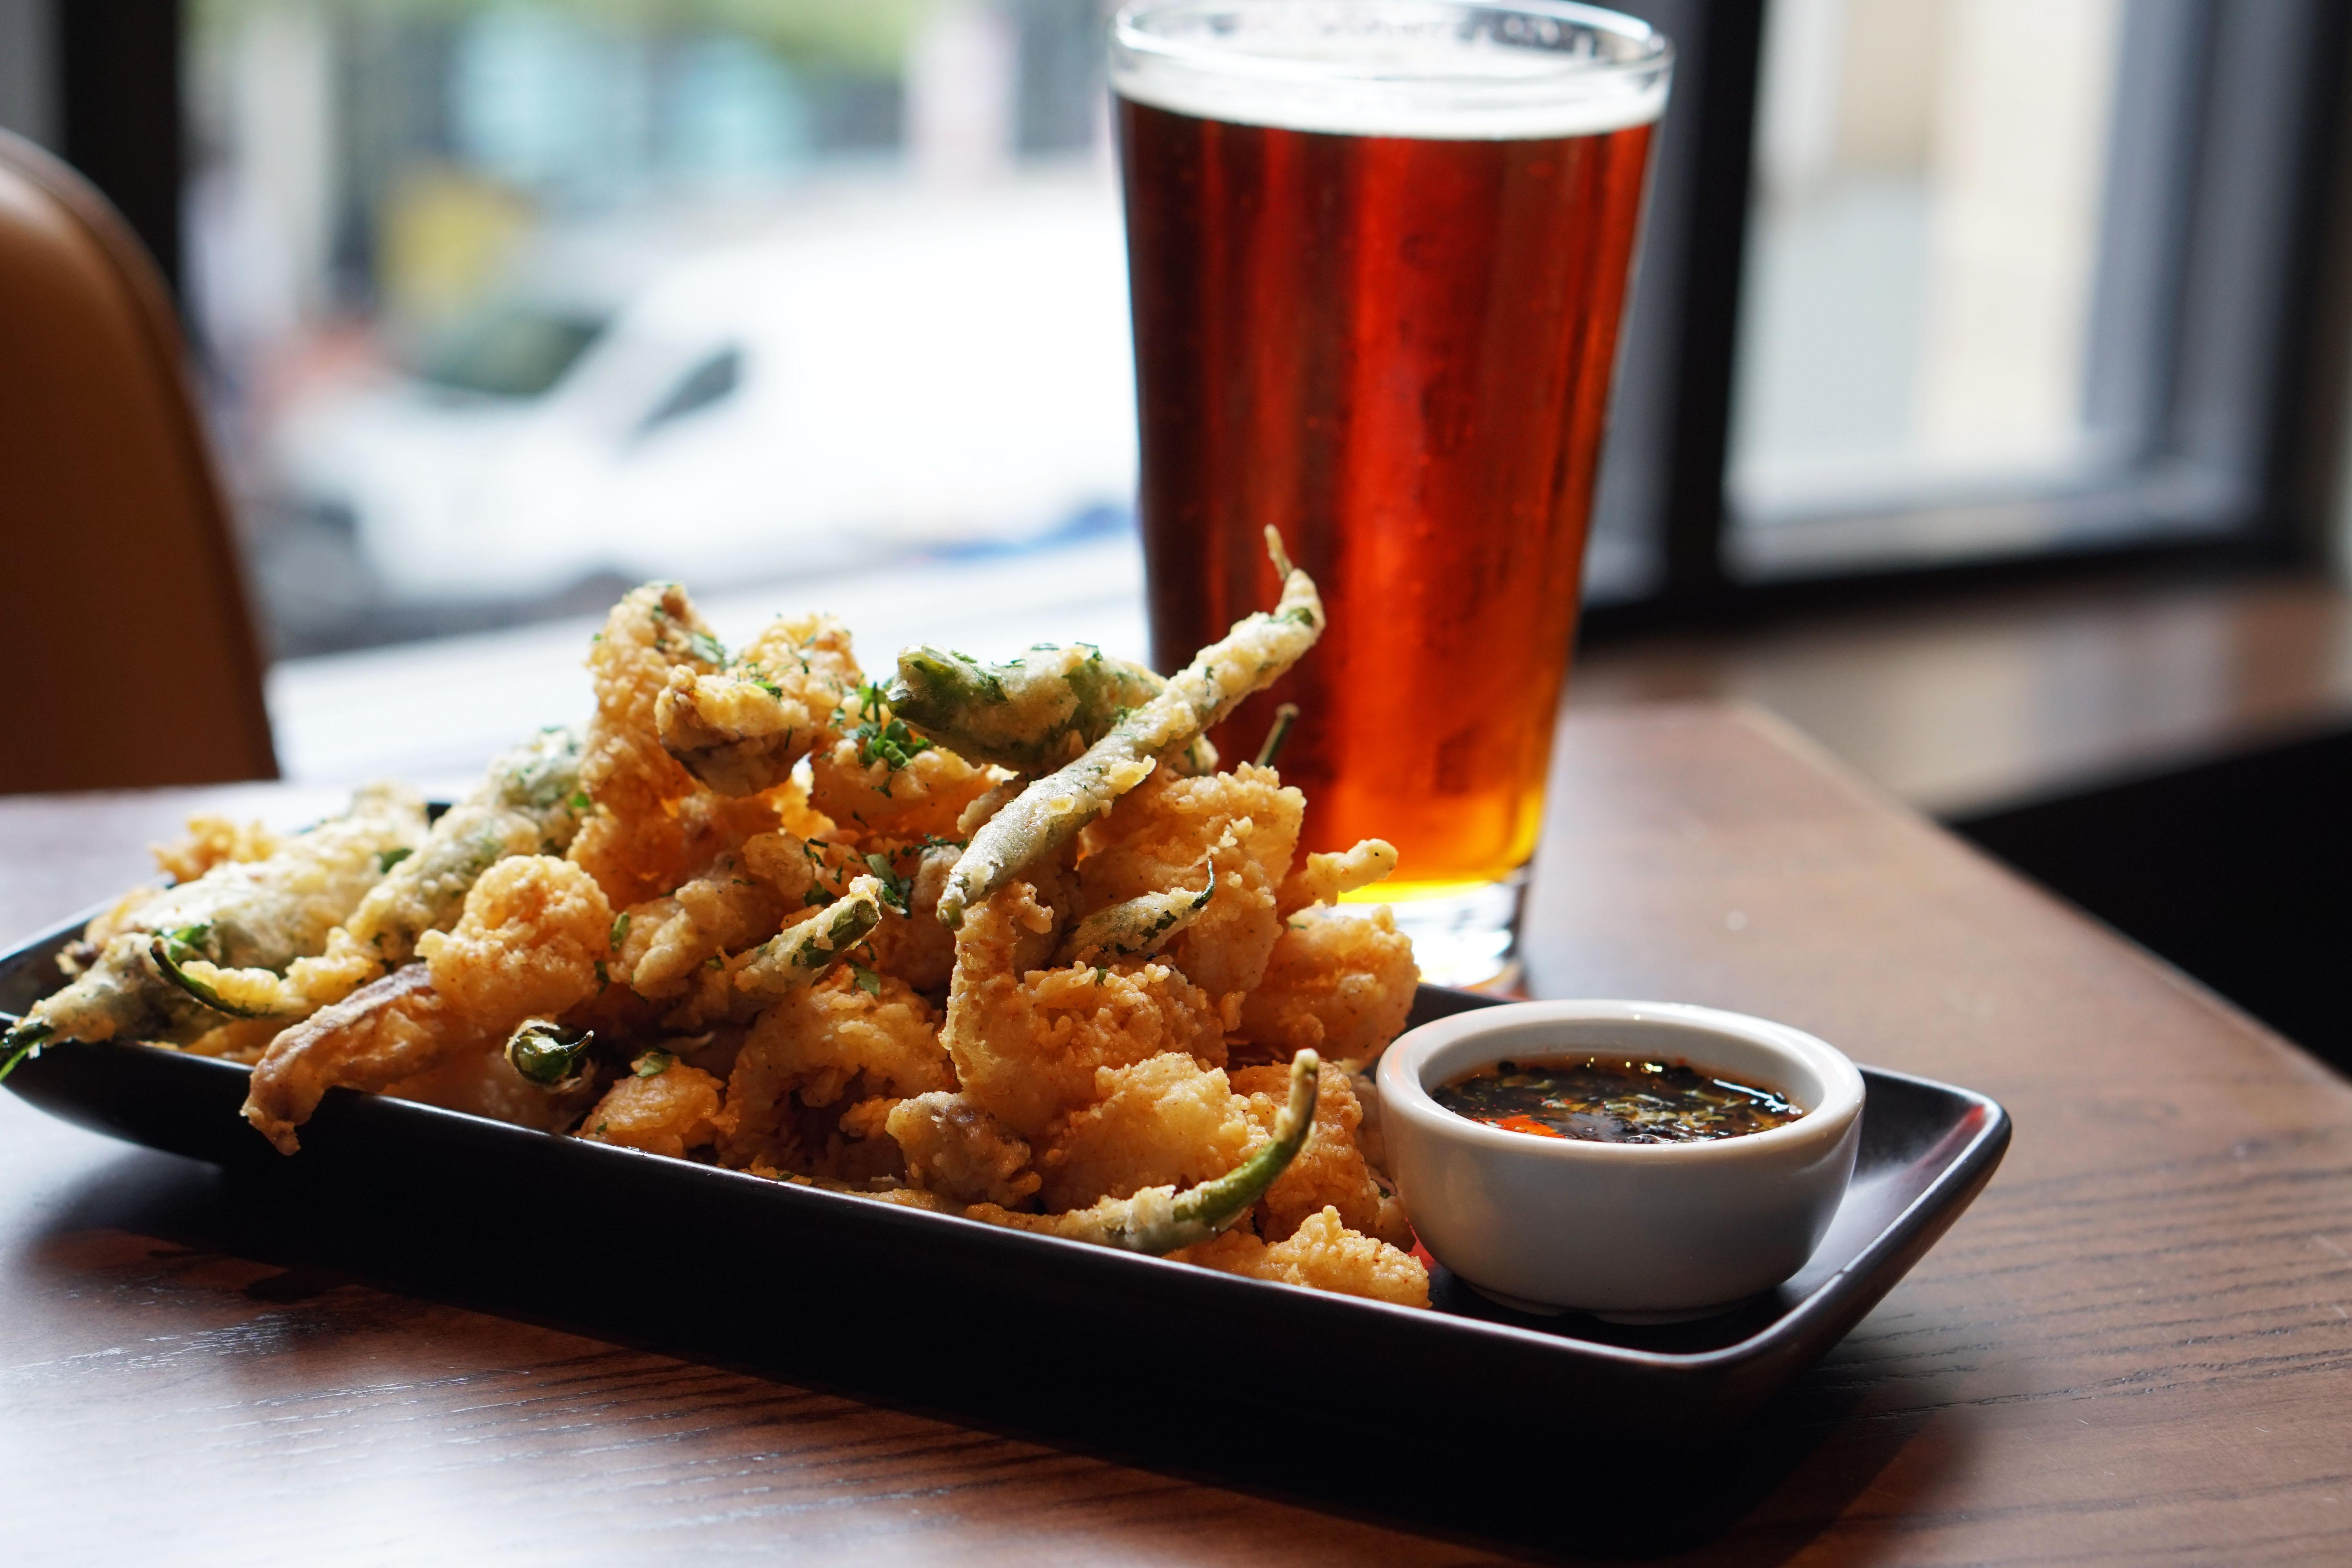 Kick back with some calamari and beer at Circa Navy Yard.{ }(Image: Courtesy  MHG)